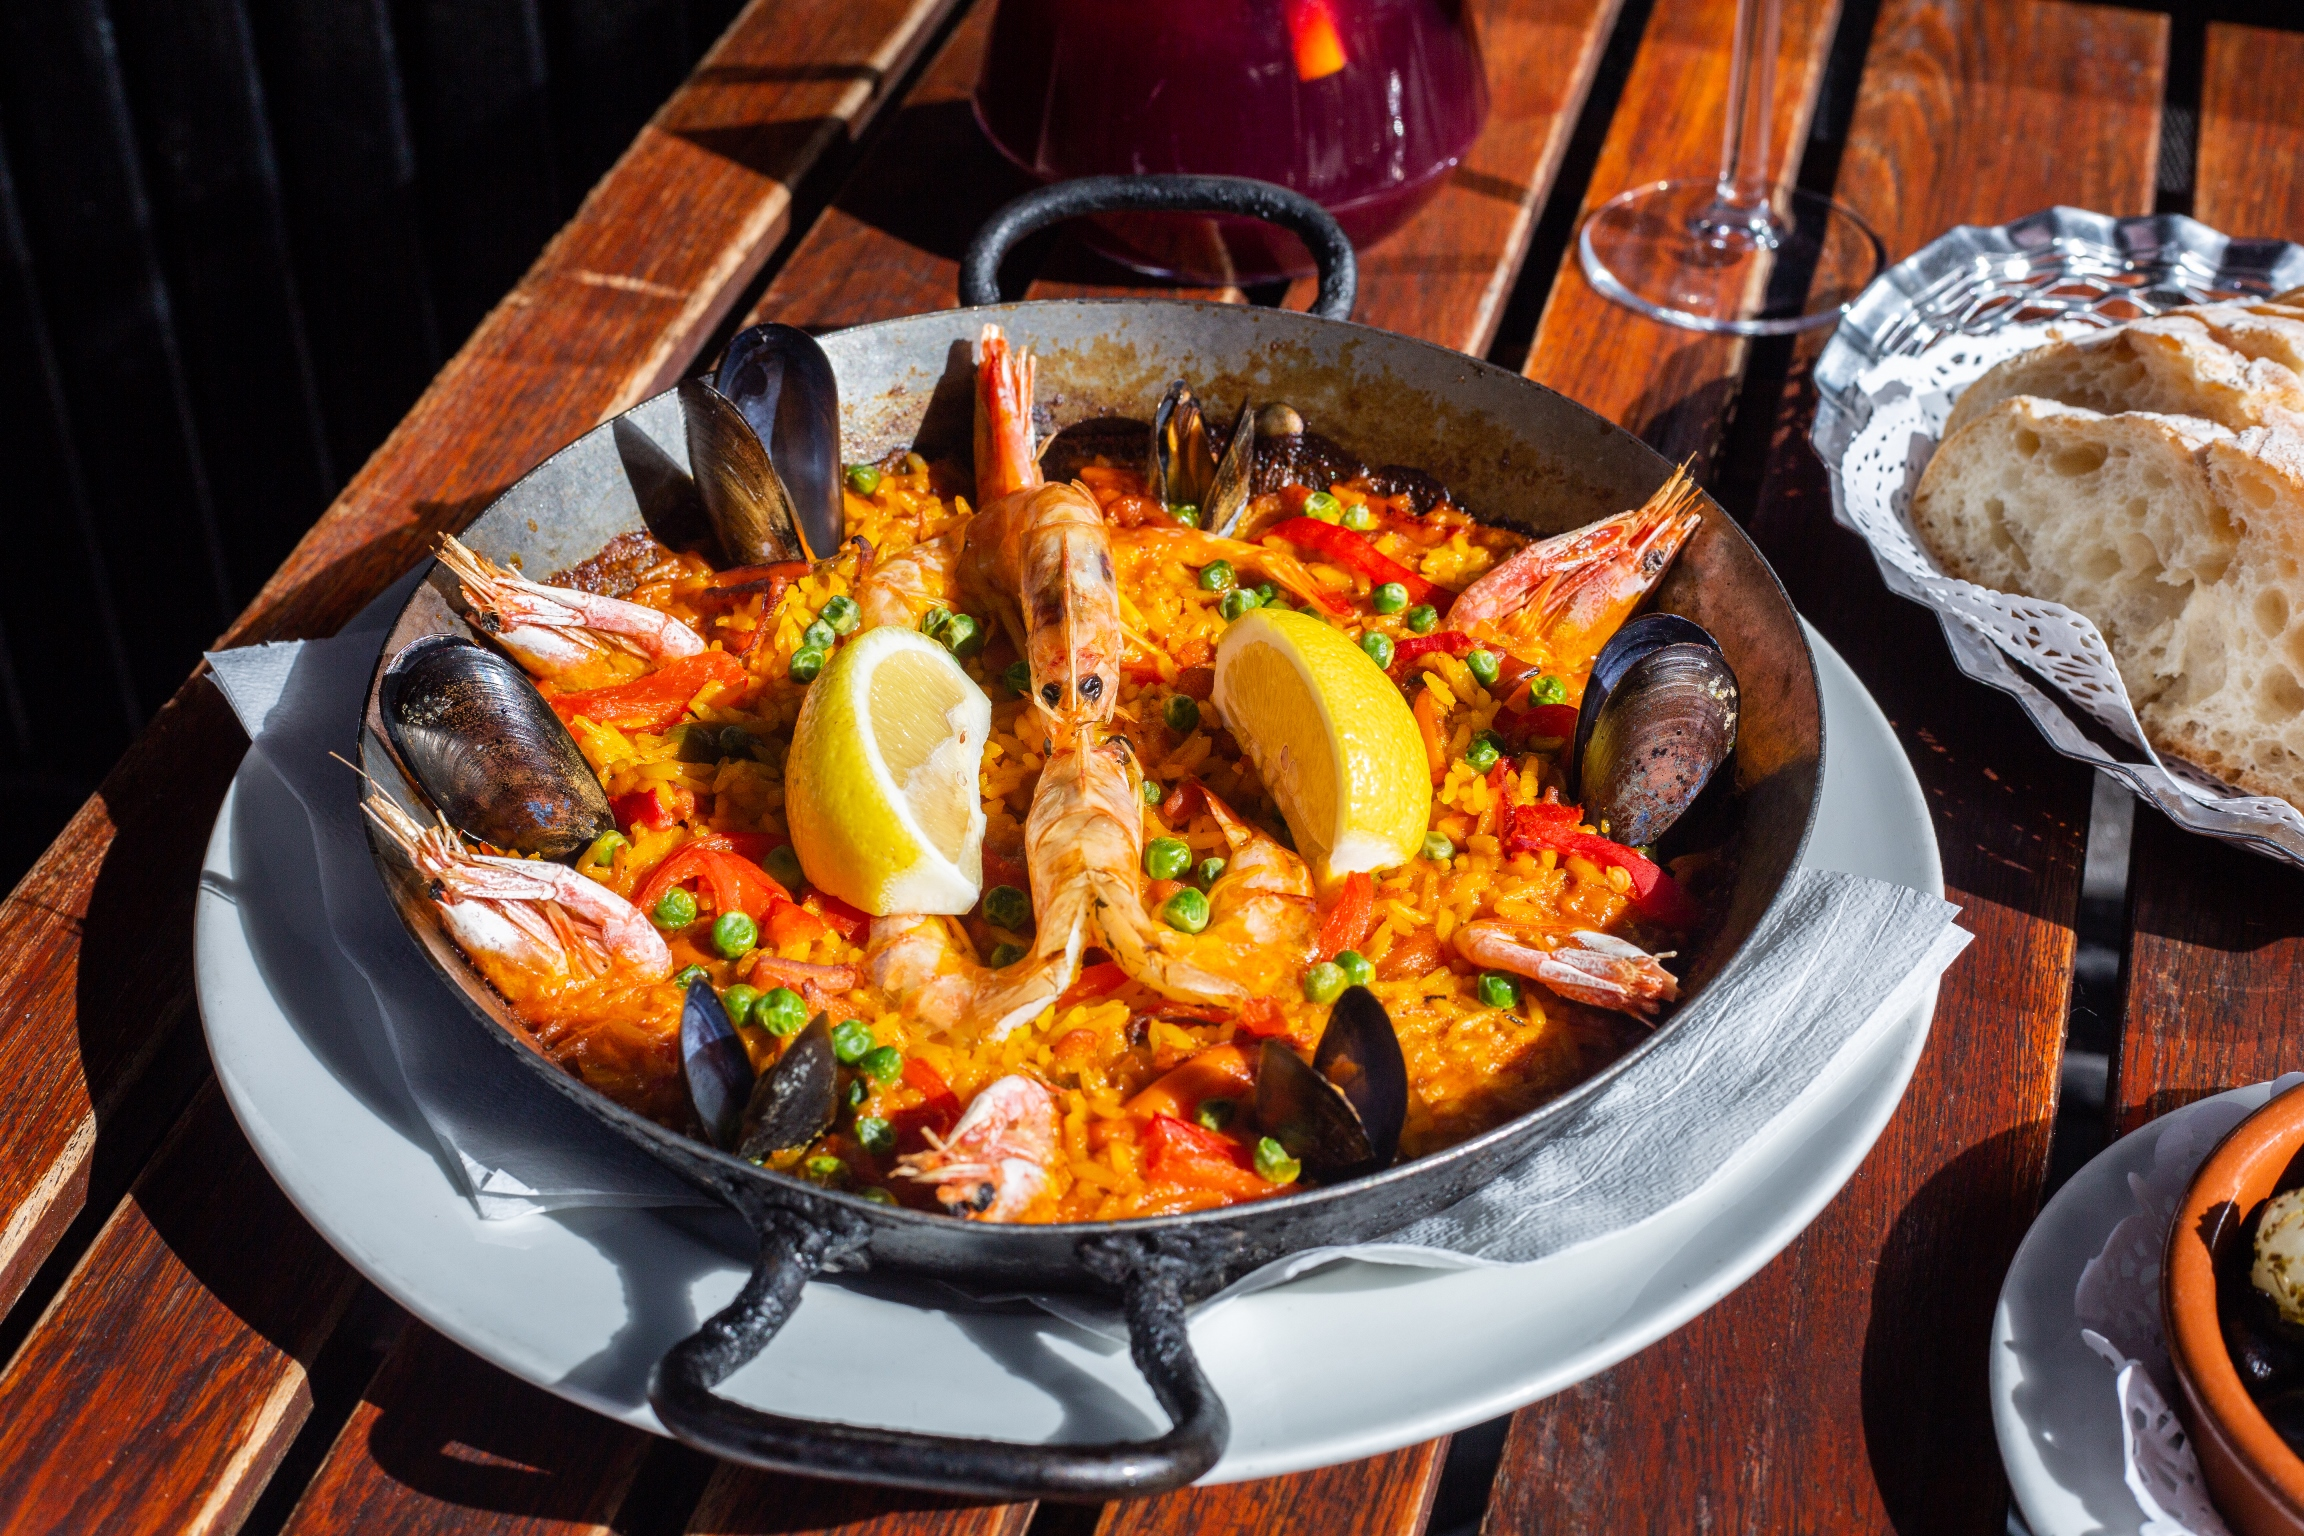 The October Luxe List: Bottomless Paella at El Pirata, Mayfair